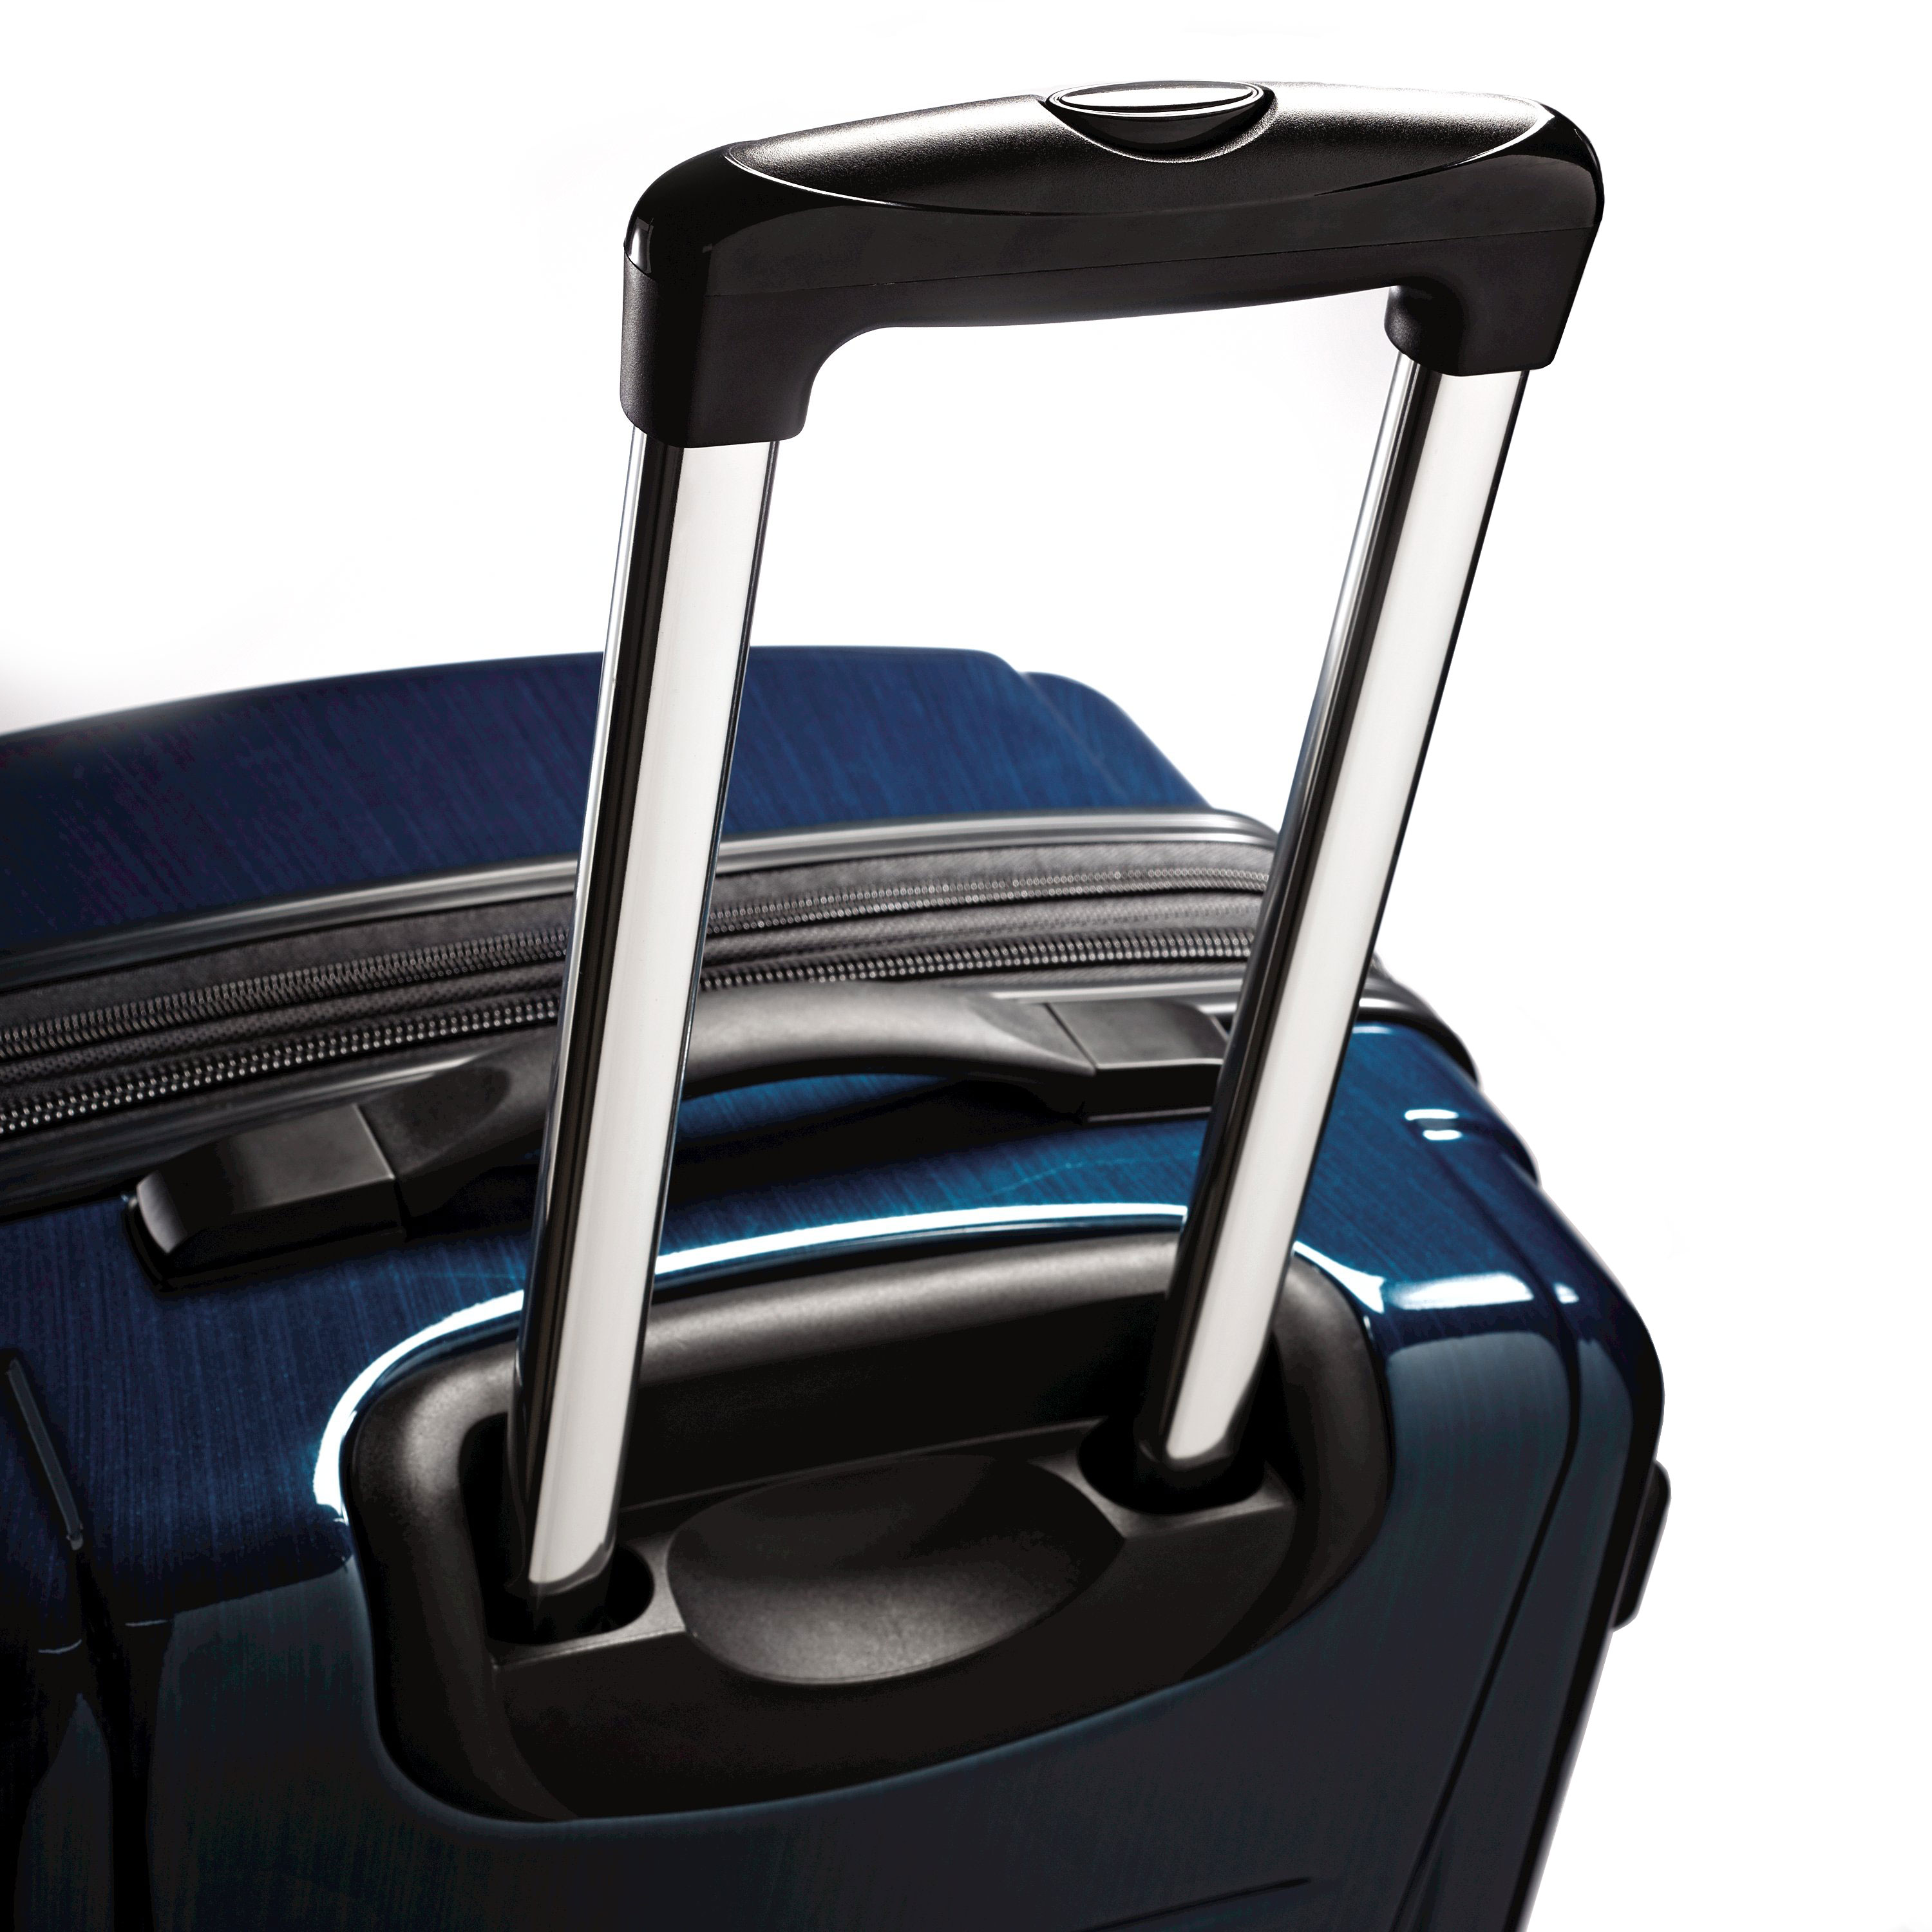 Samsonite-Winfield-2-Fashion-Spinner-Luggage thumbnail 27